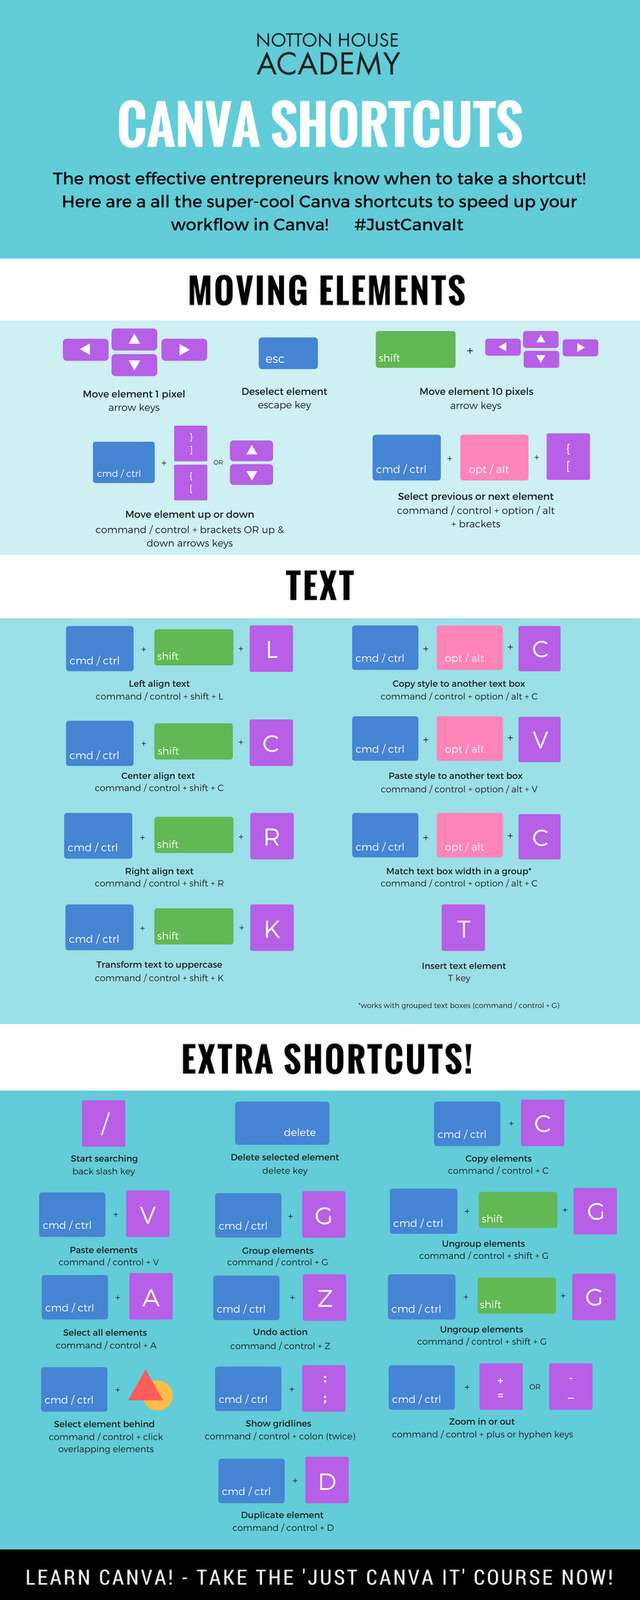 Speed up your workflow! - Click below to grab your free copy of all the Canva Shortcuts!